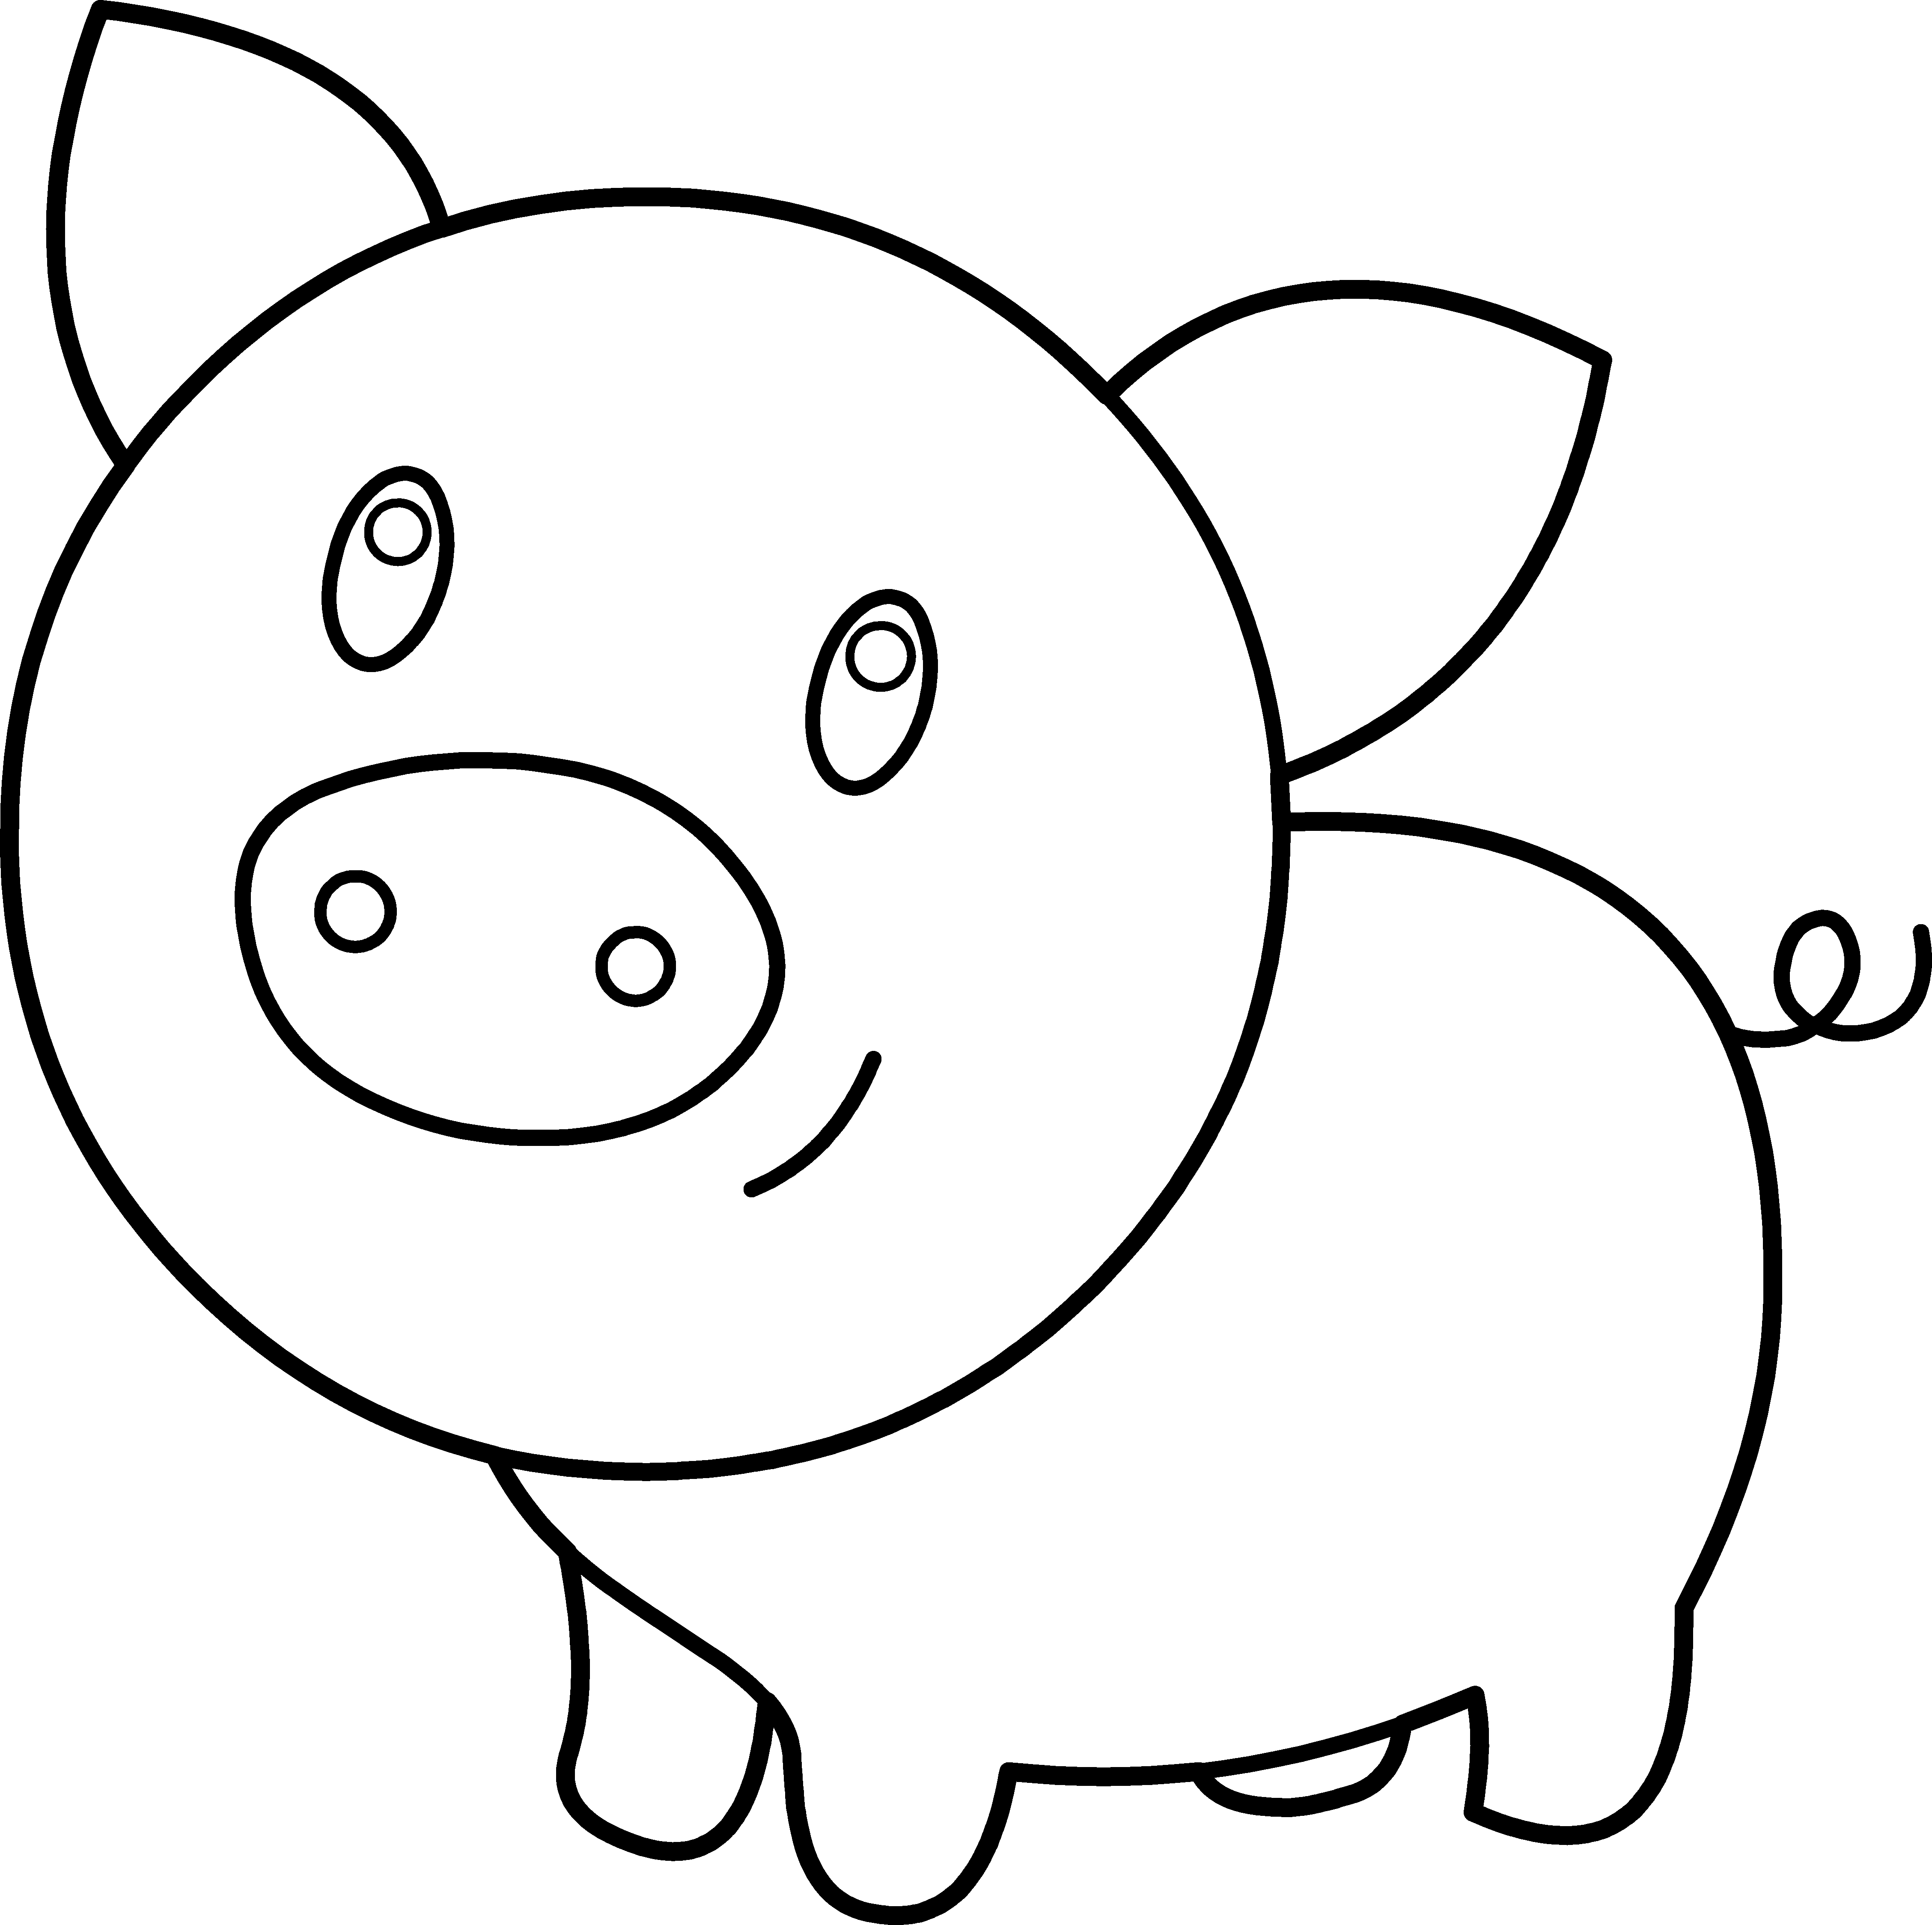 coloring pig pictures printable pig coloring pages for children coloring pig pictures